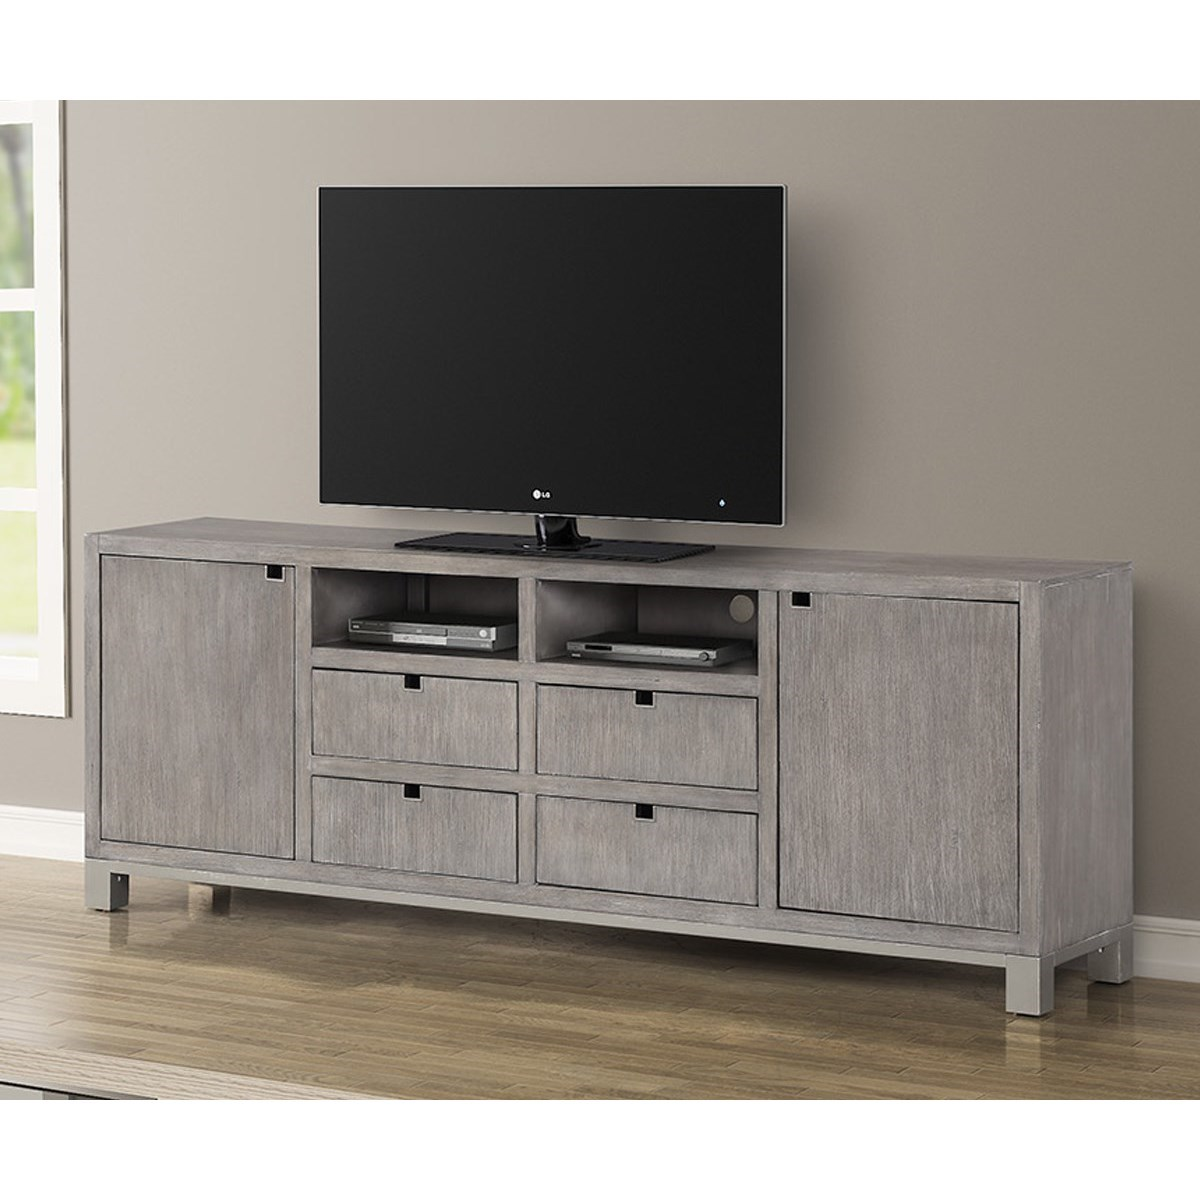 "Pacific Heights 84"" TV Console by Legends Furniture at Bullard Furniture"